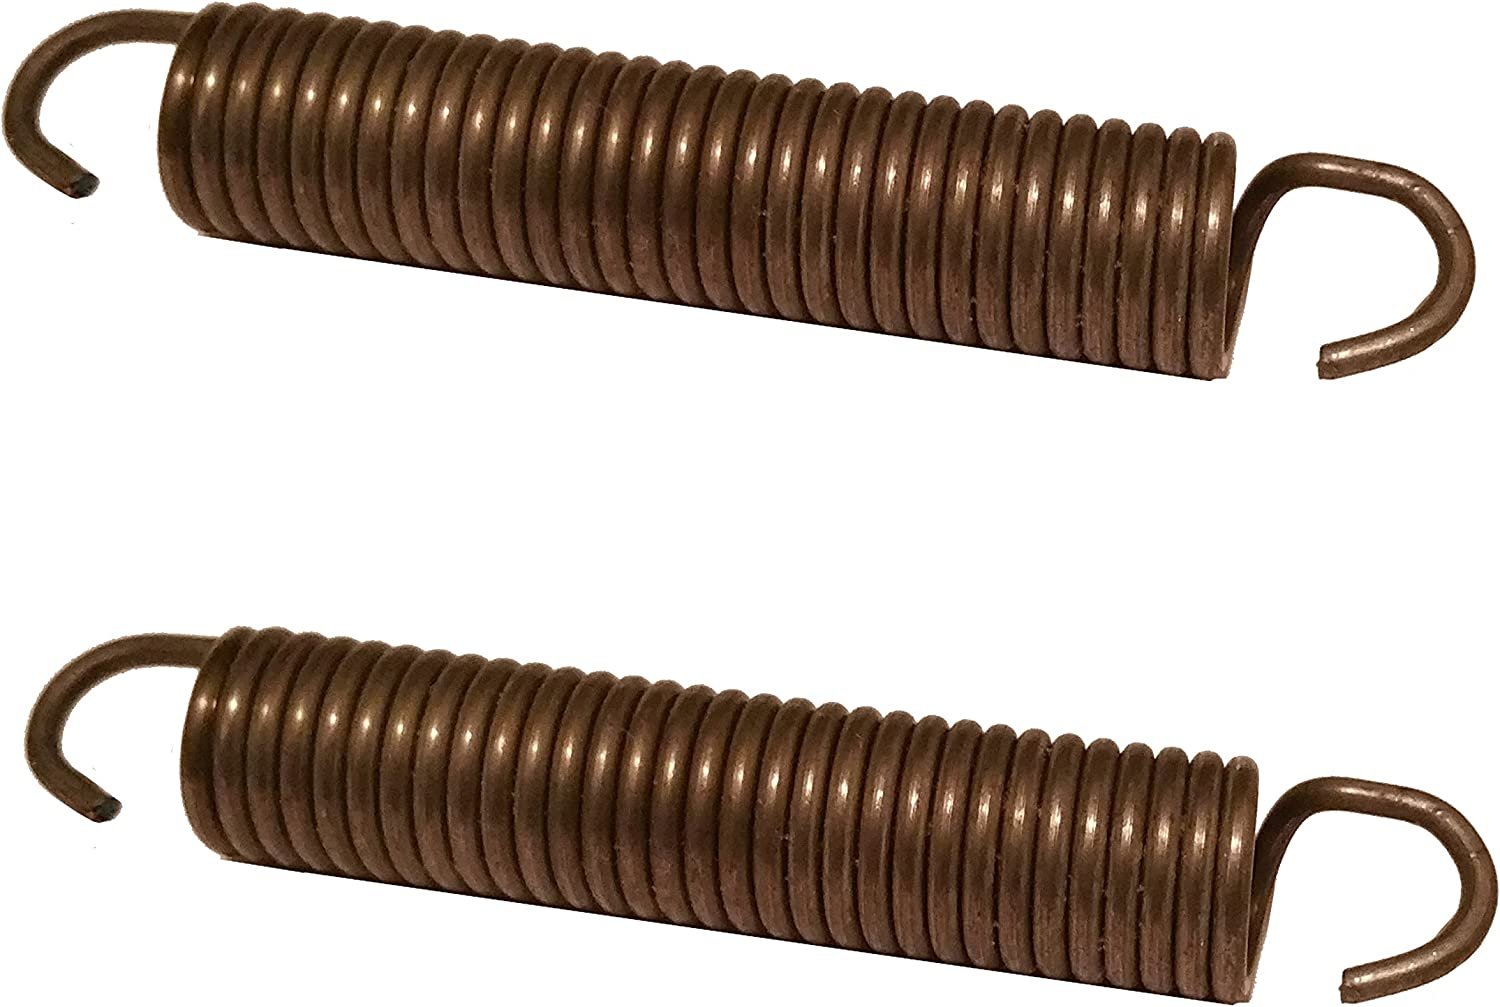 """3"""" Replacement Helical Sofa/Chair/Recliner Furniture Seat Springs - Set of 2"""